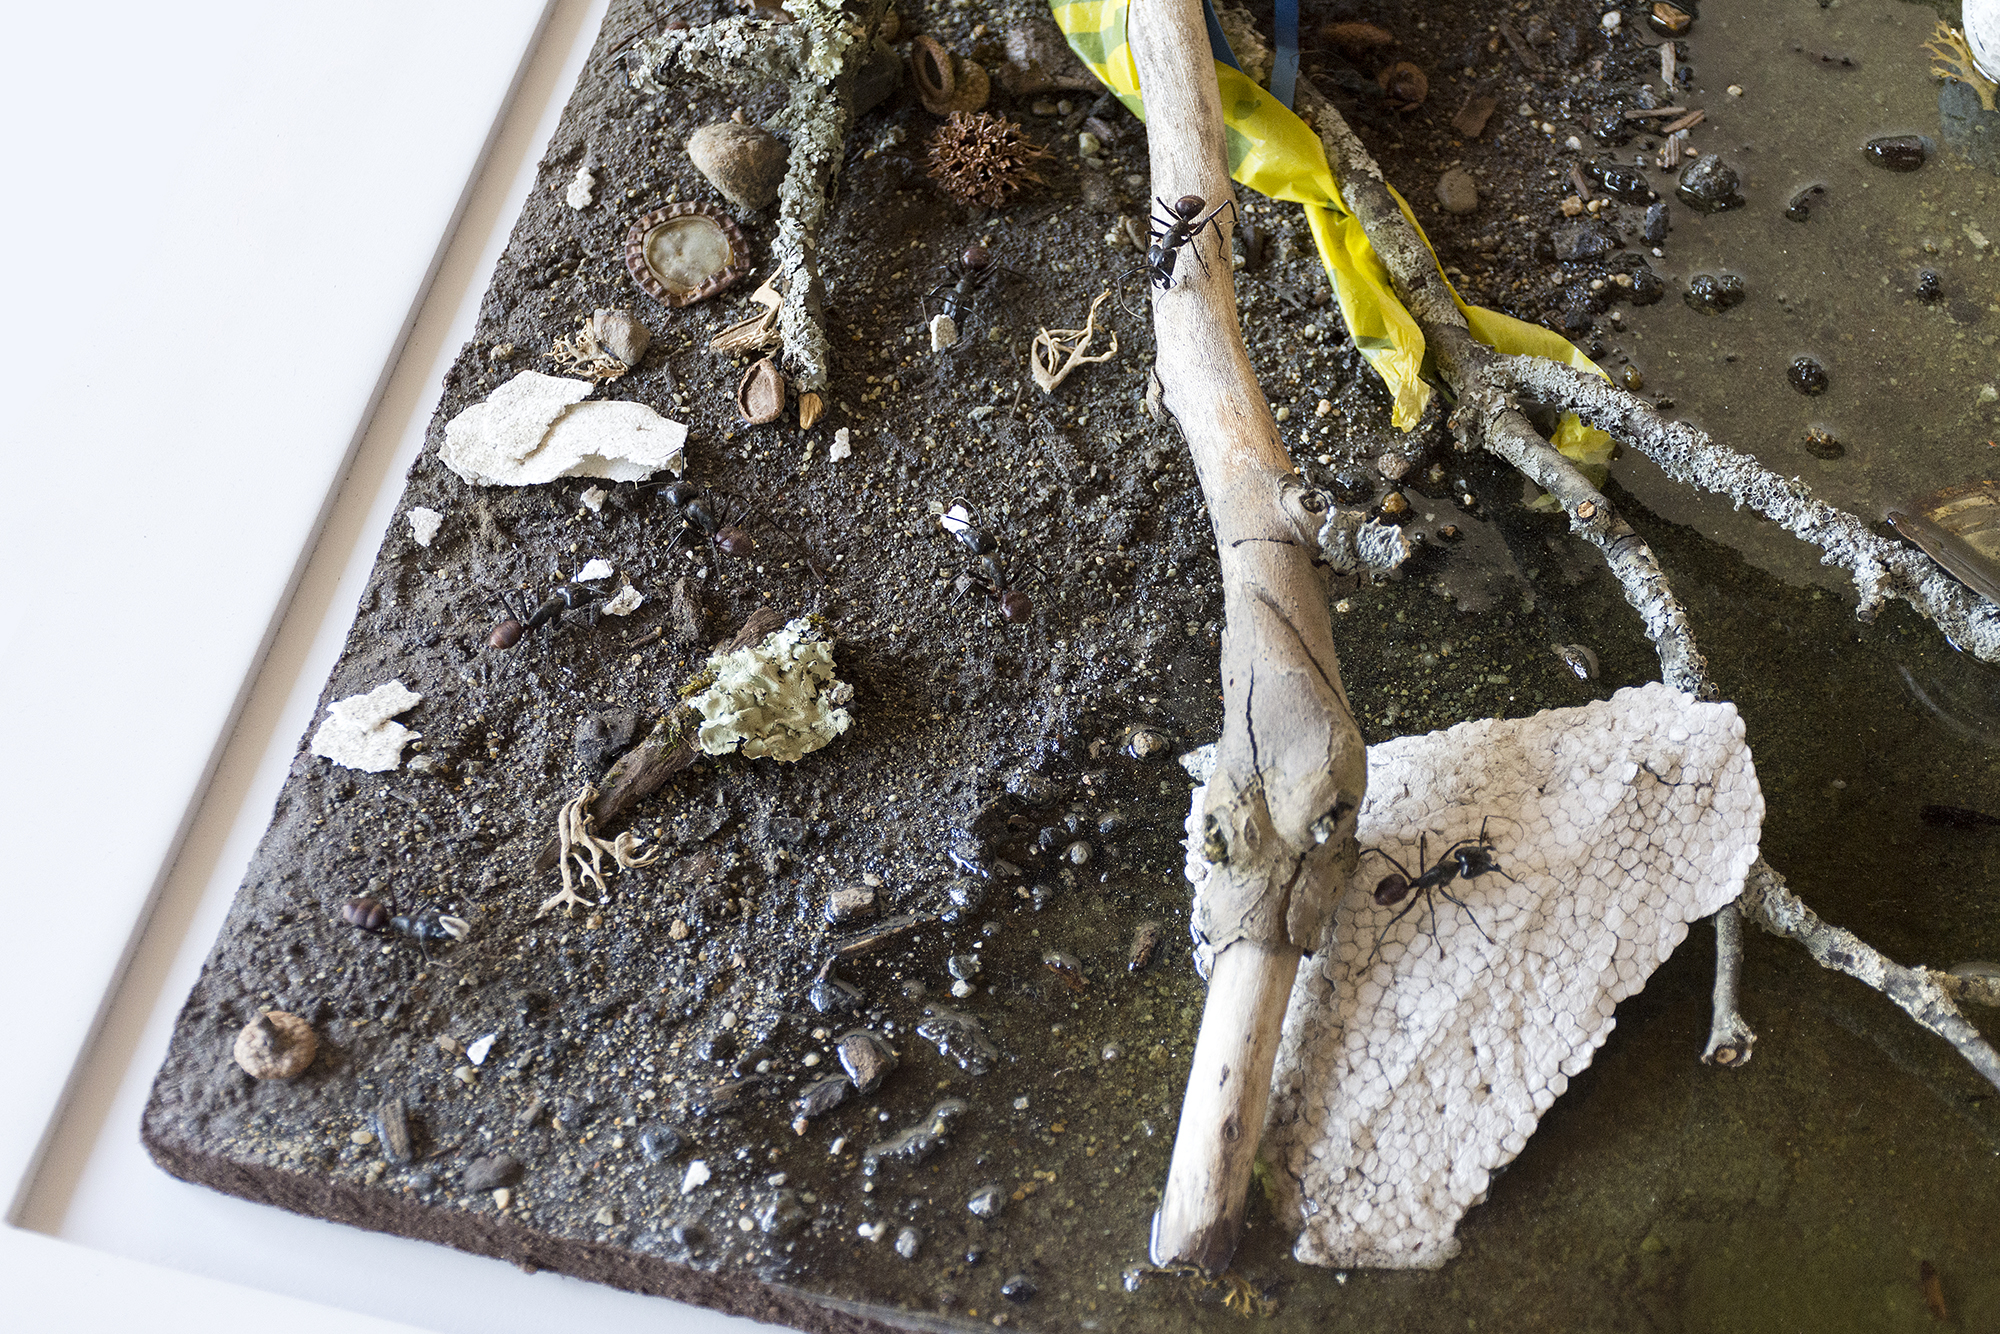 Detail from: Synthetic Landscape #03 (Suggested Nature)